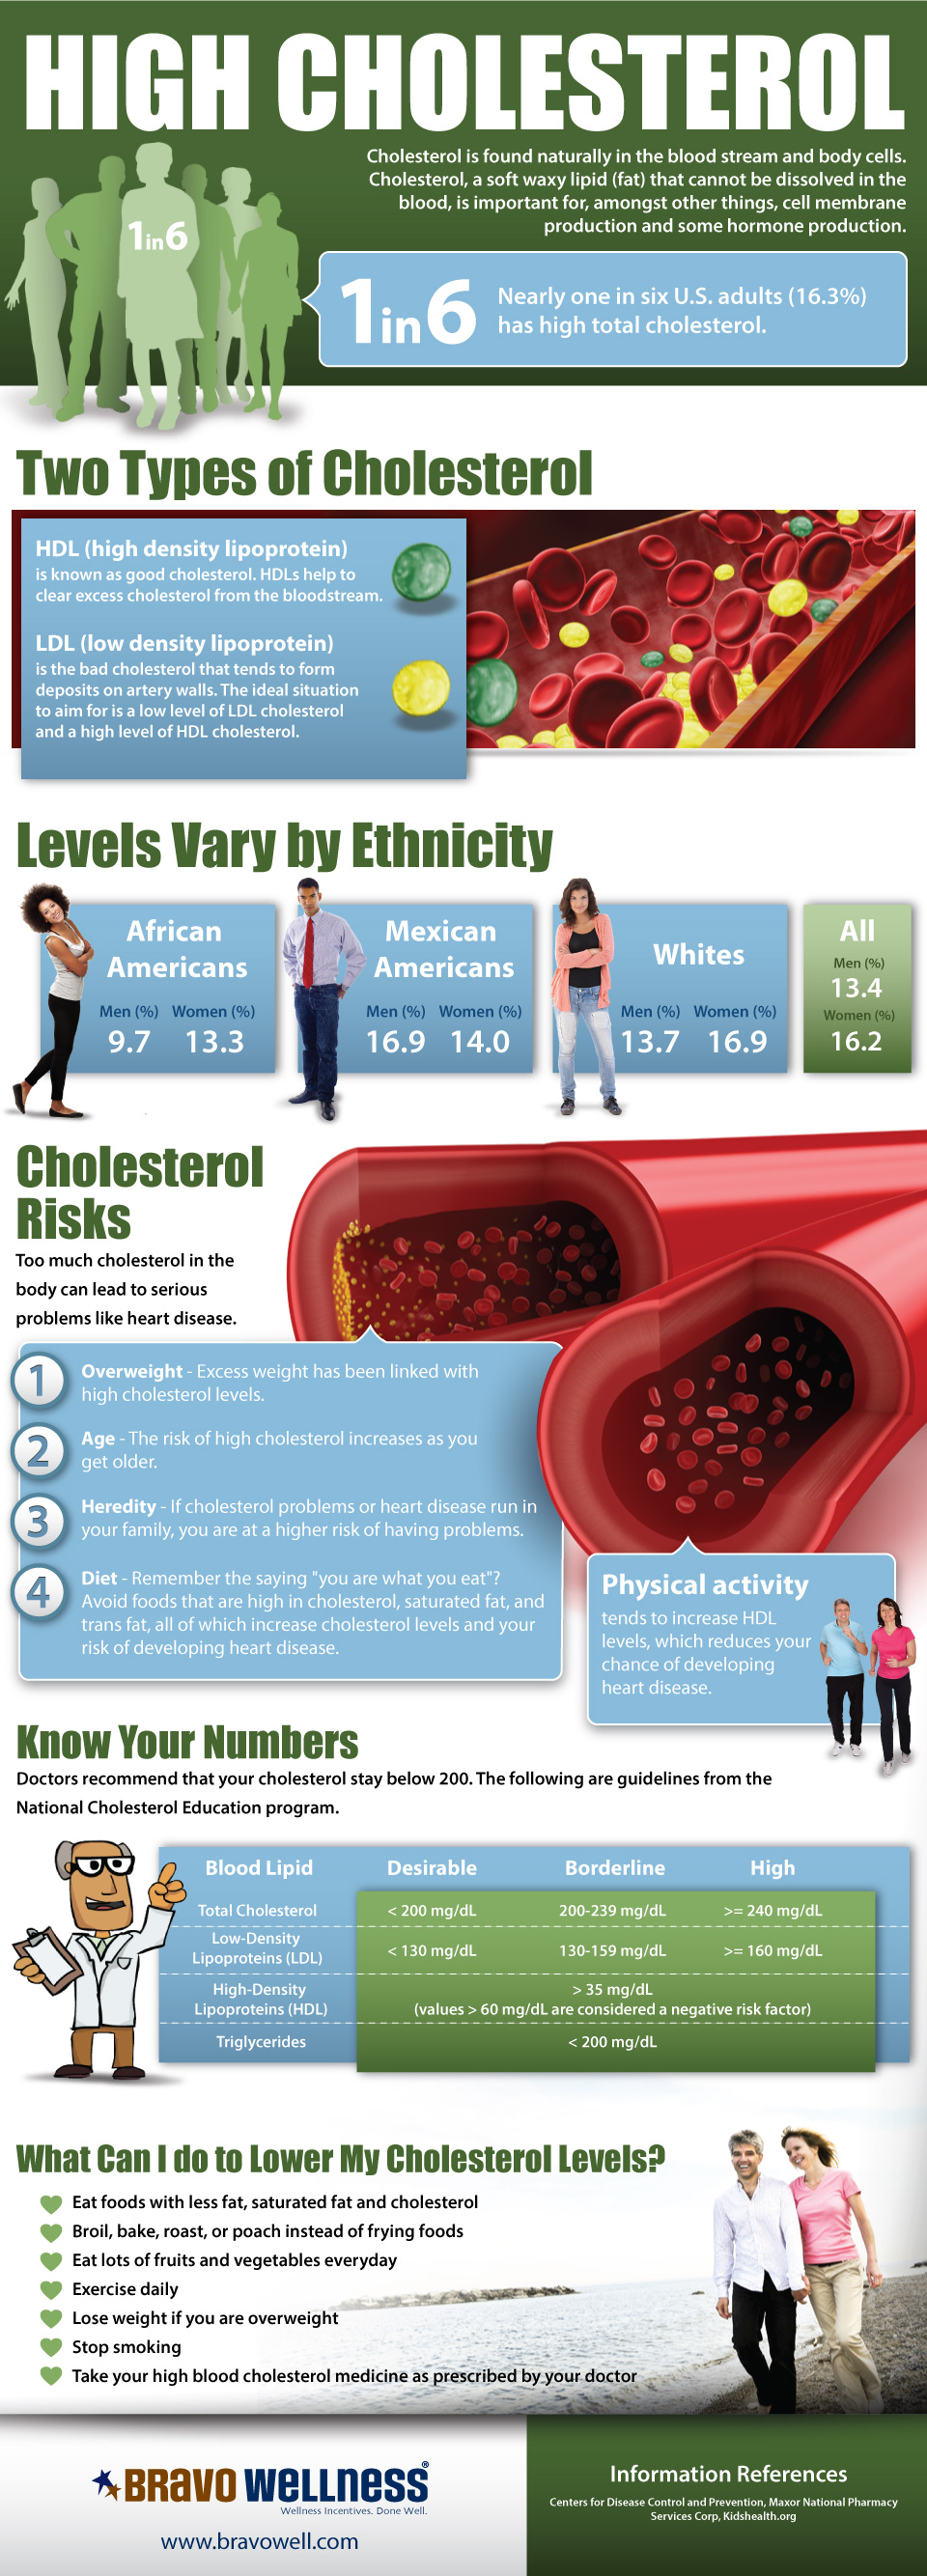 infographic-high-cholesterol